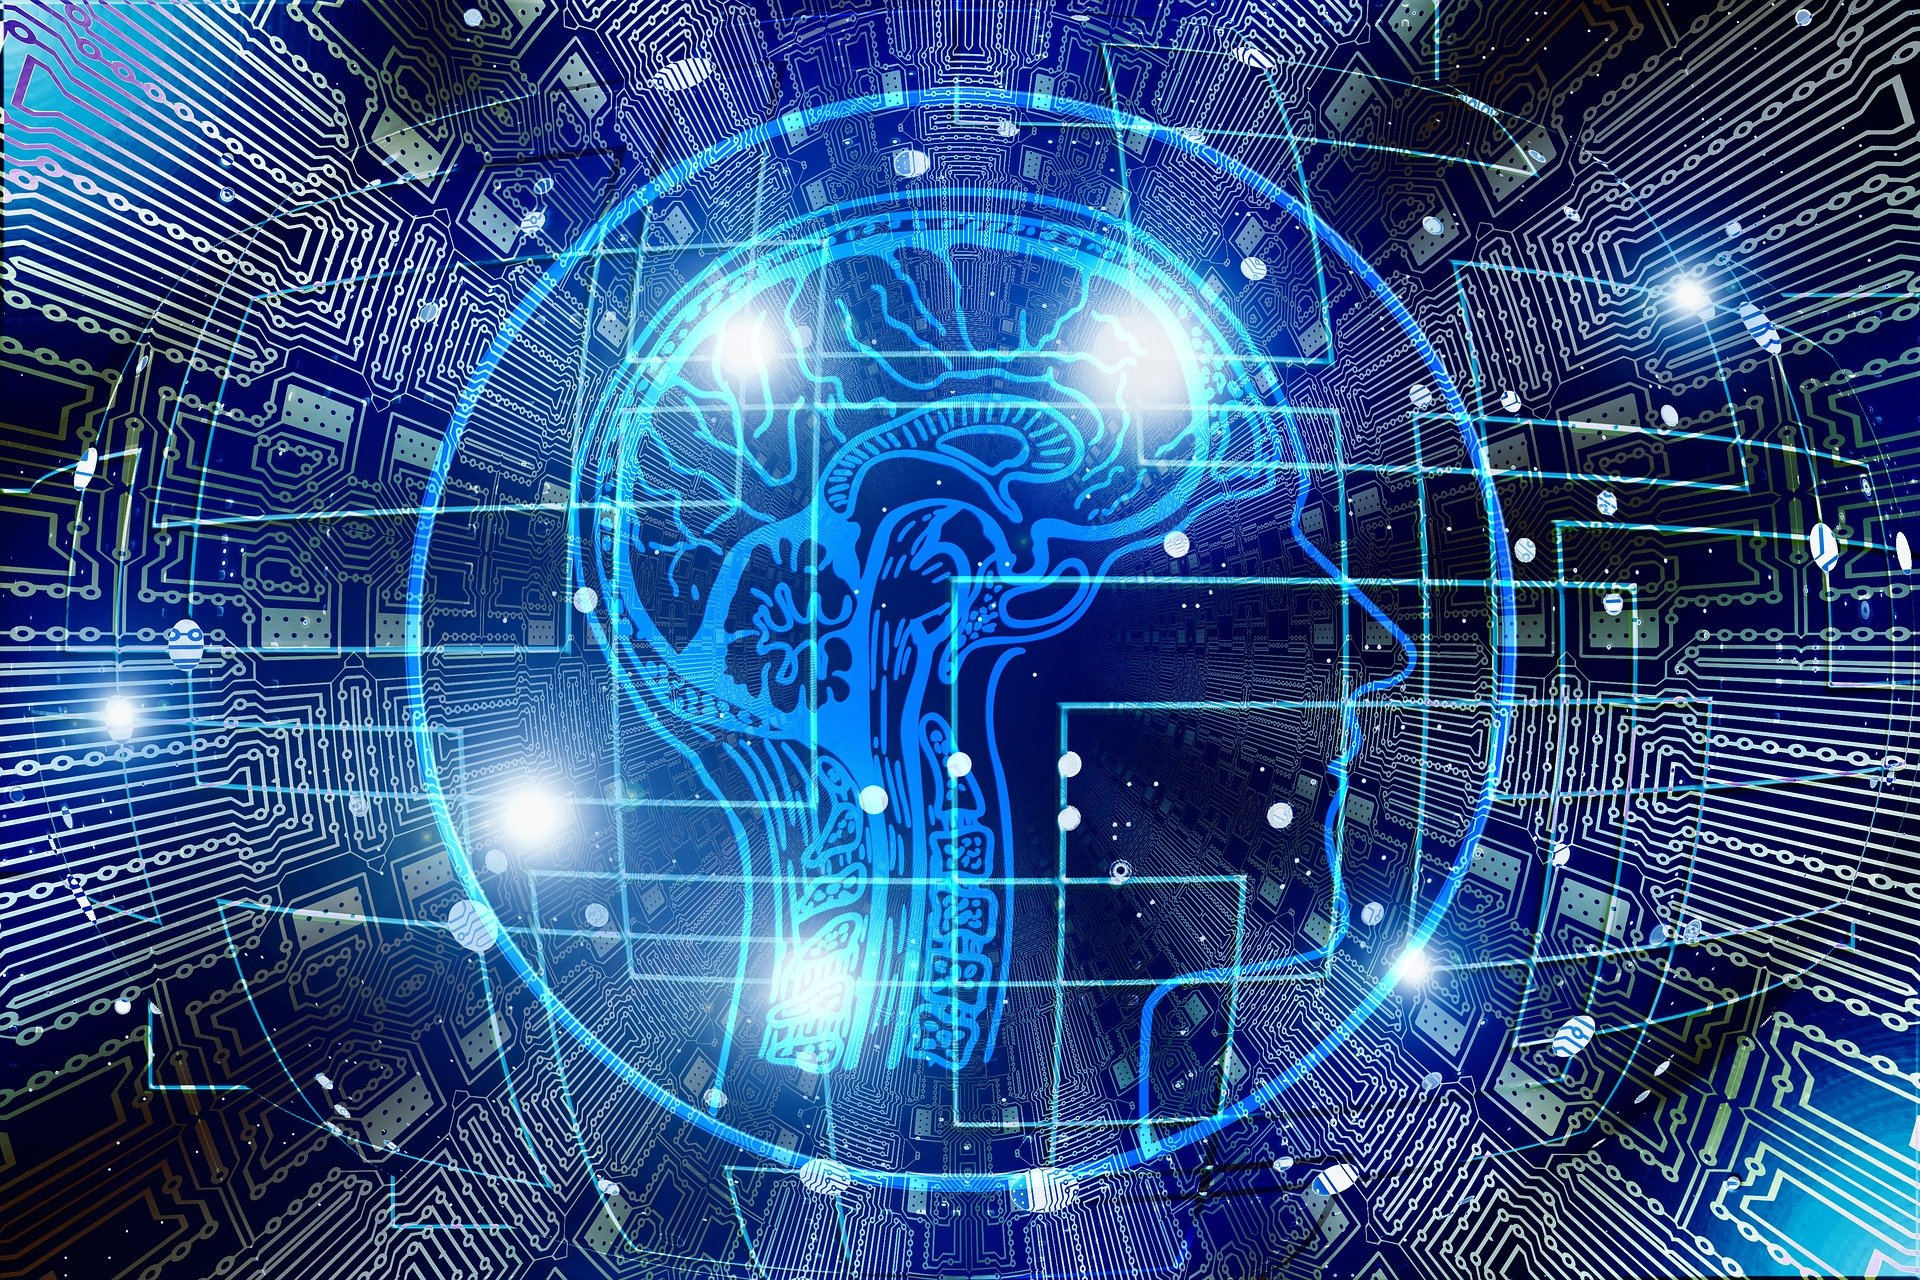 How Artificial Intelligence is affecting our Daily Life – Useful insights by Hani Zeini